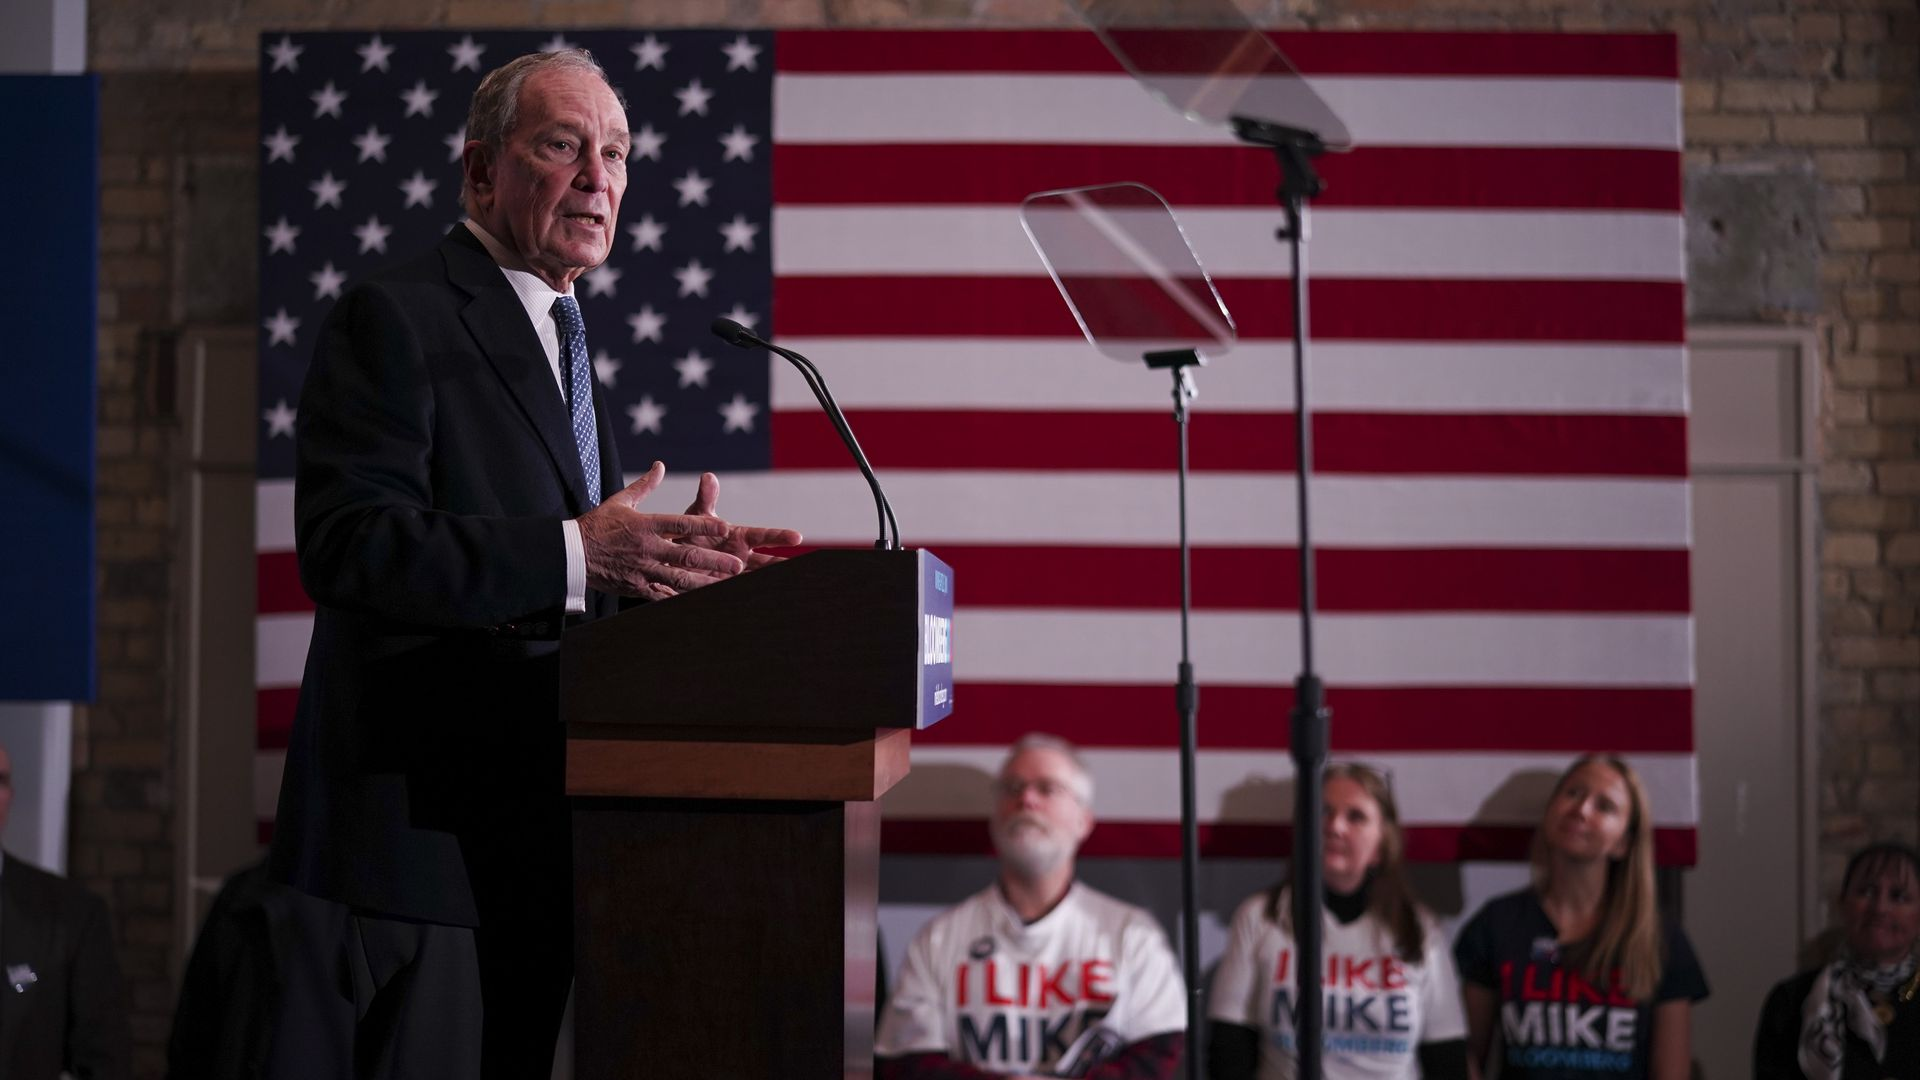 In this image, Mike Bloomberg stands in front of an American flag while on the 2020 campaign trail